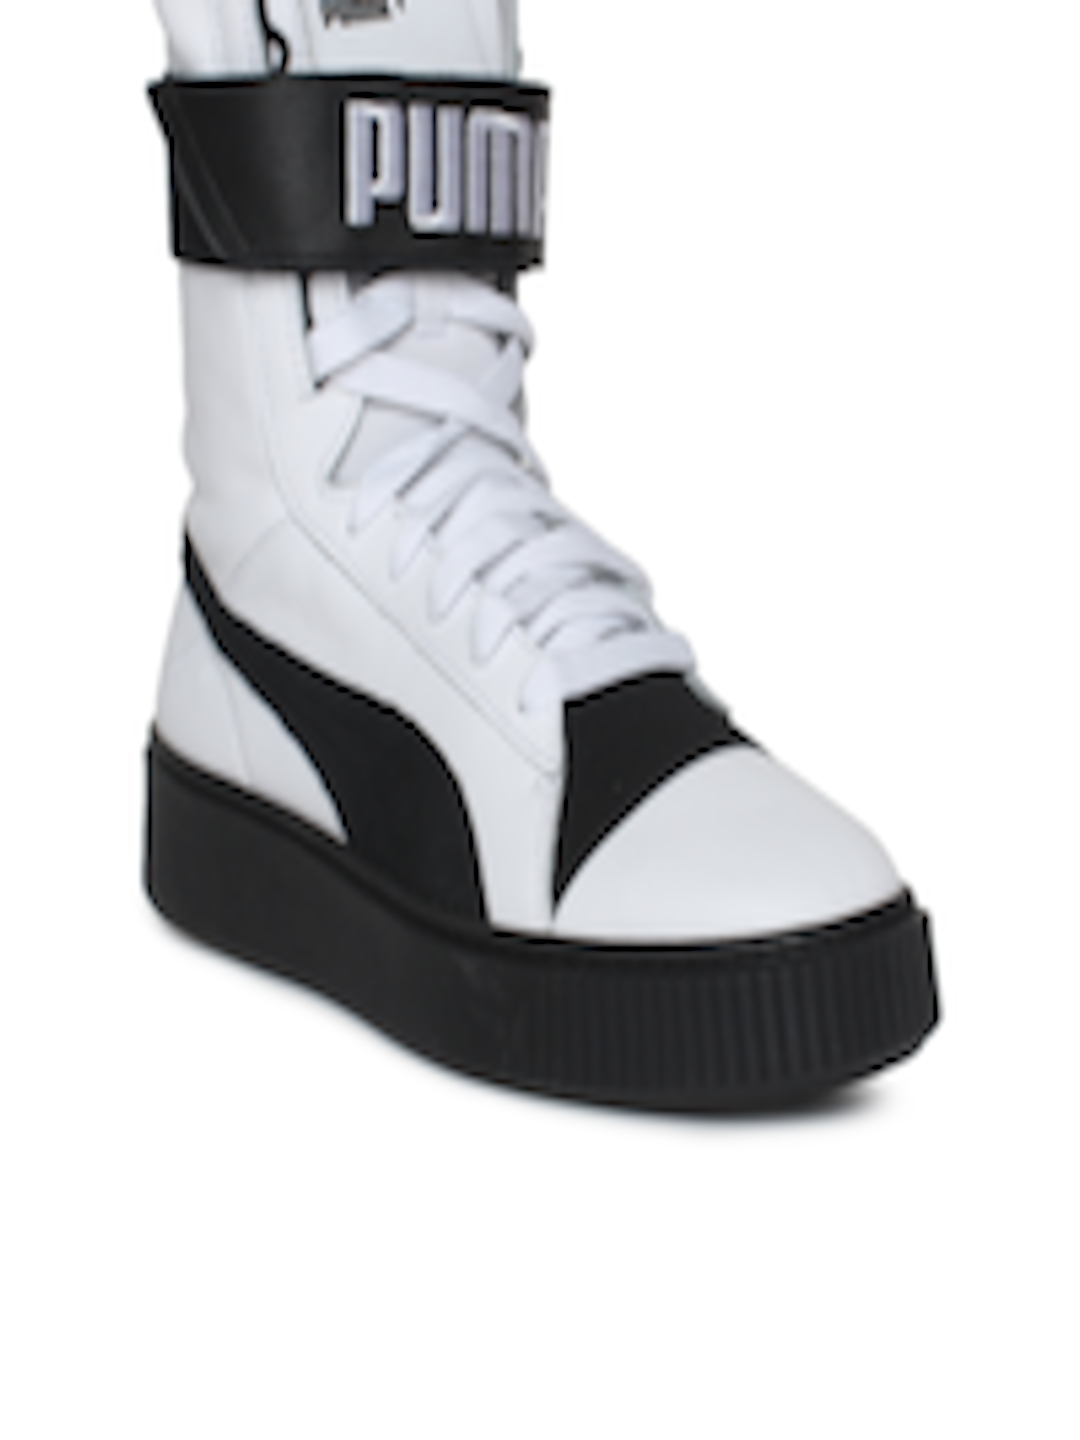 f71e9ecfa190 Buy Puma Women White Printed Synthetic Platform Boot High Top Sneakers -  Casual Shoes for Women 2268818